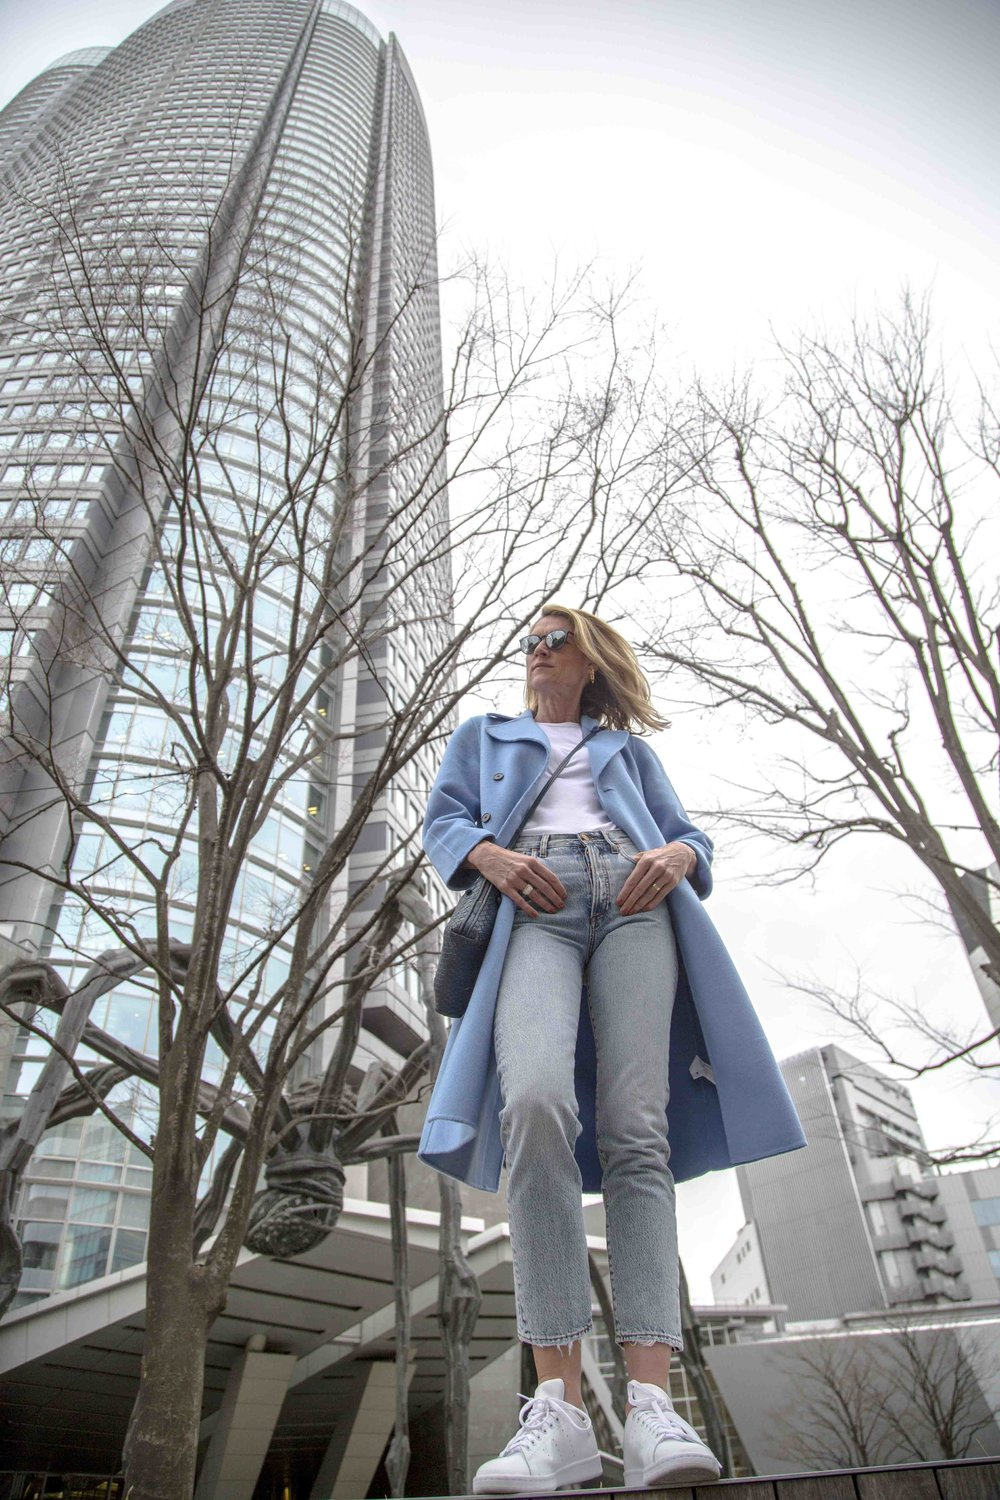 Roppongi Hills photo session